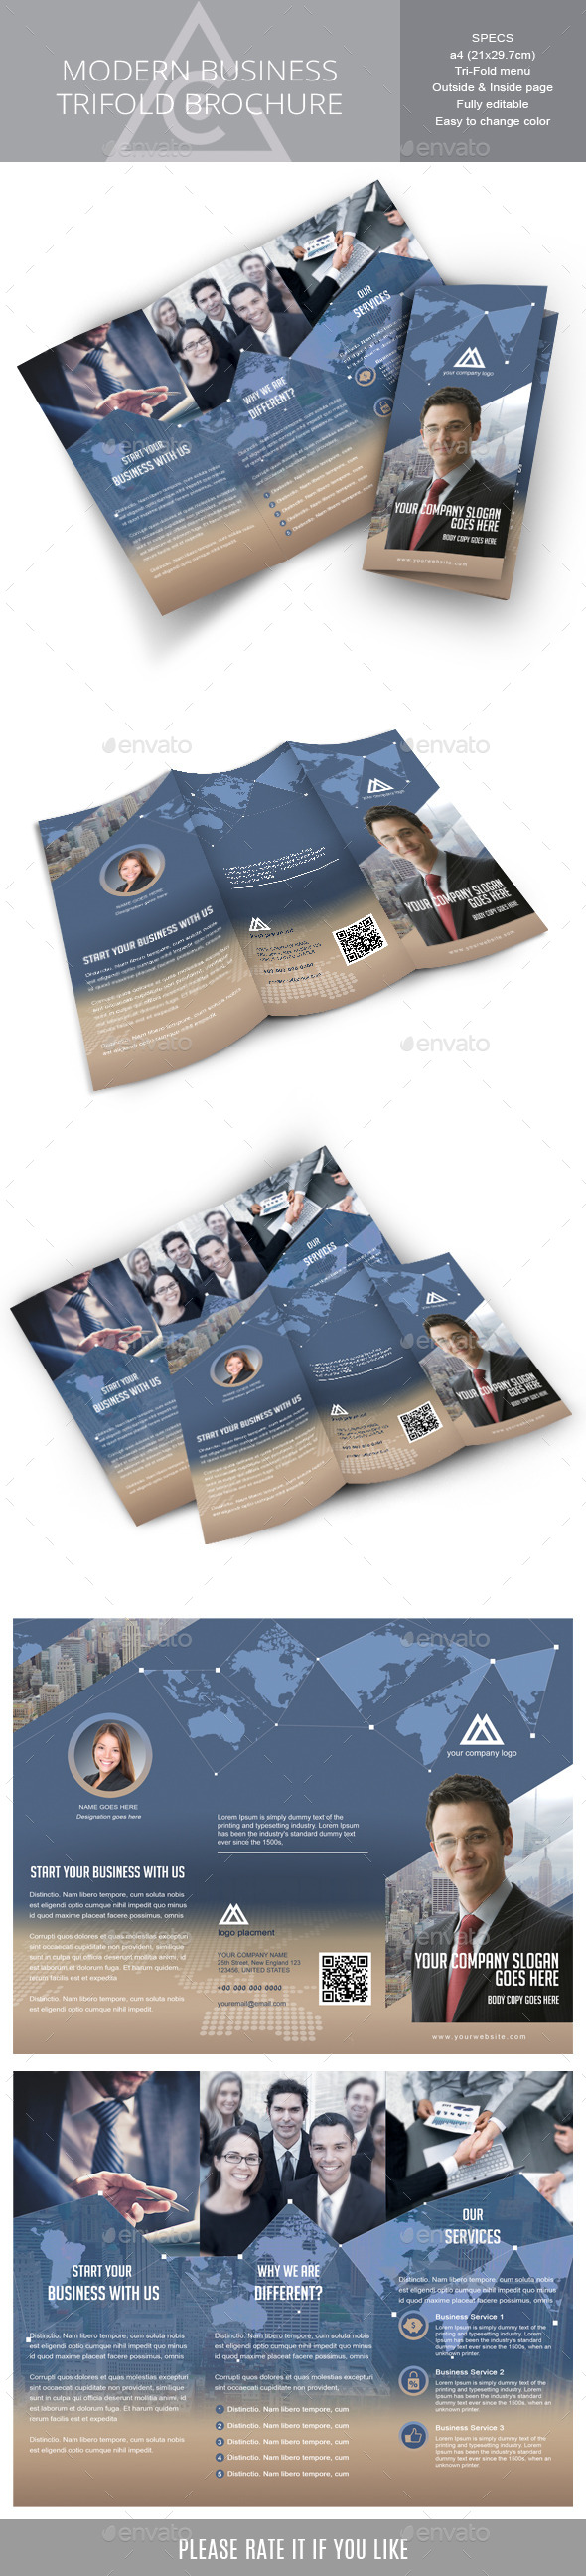 Tri-fold brochure for Corporate Business - Corporate Brochures